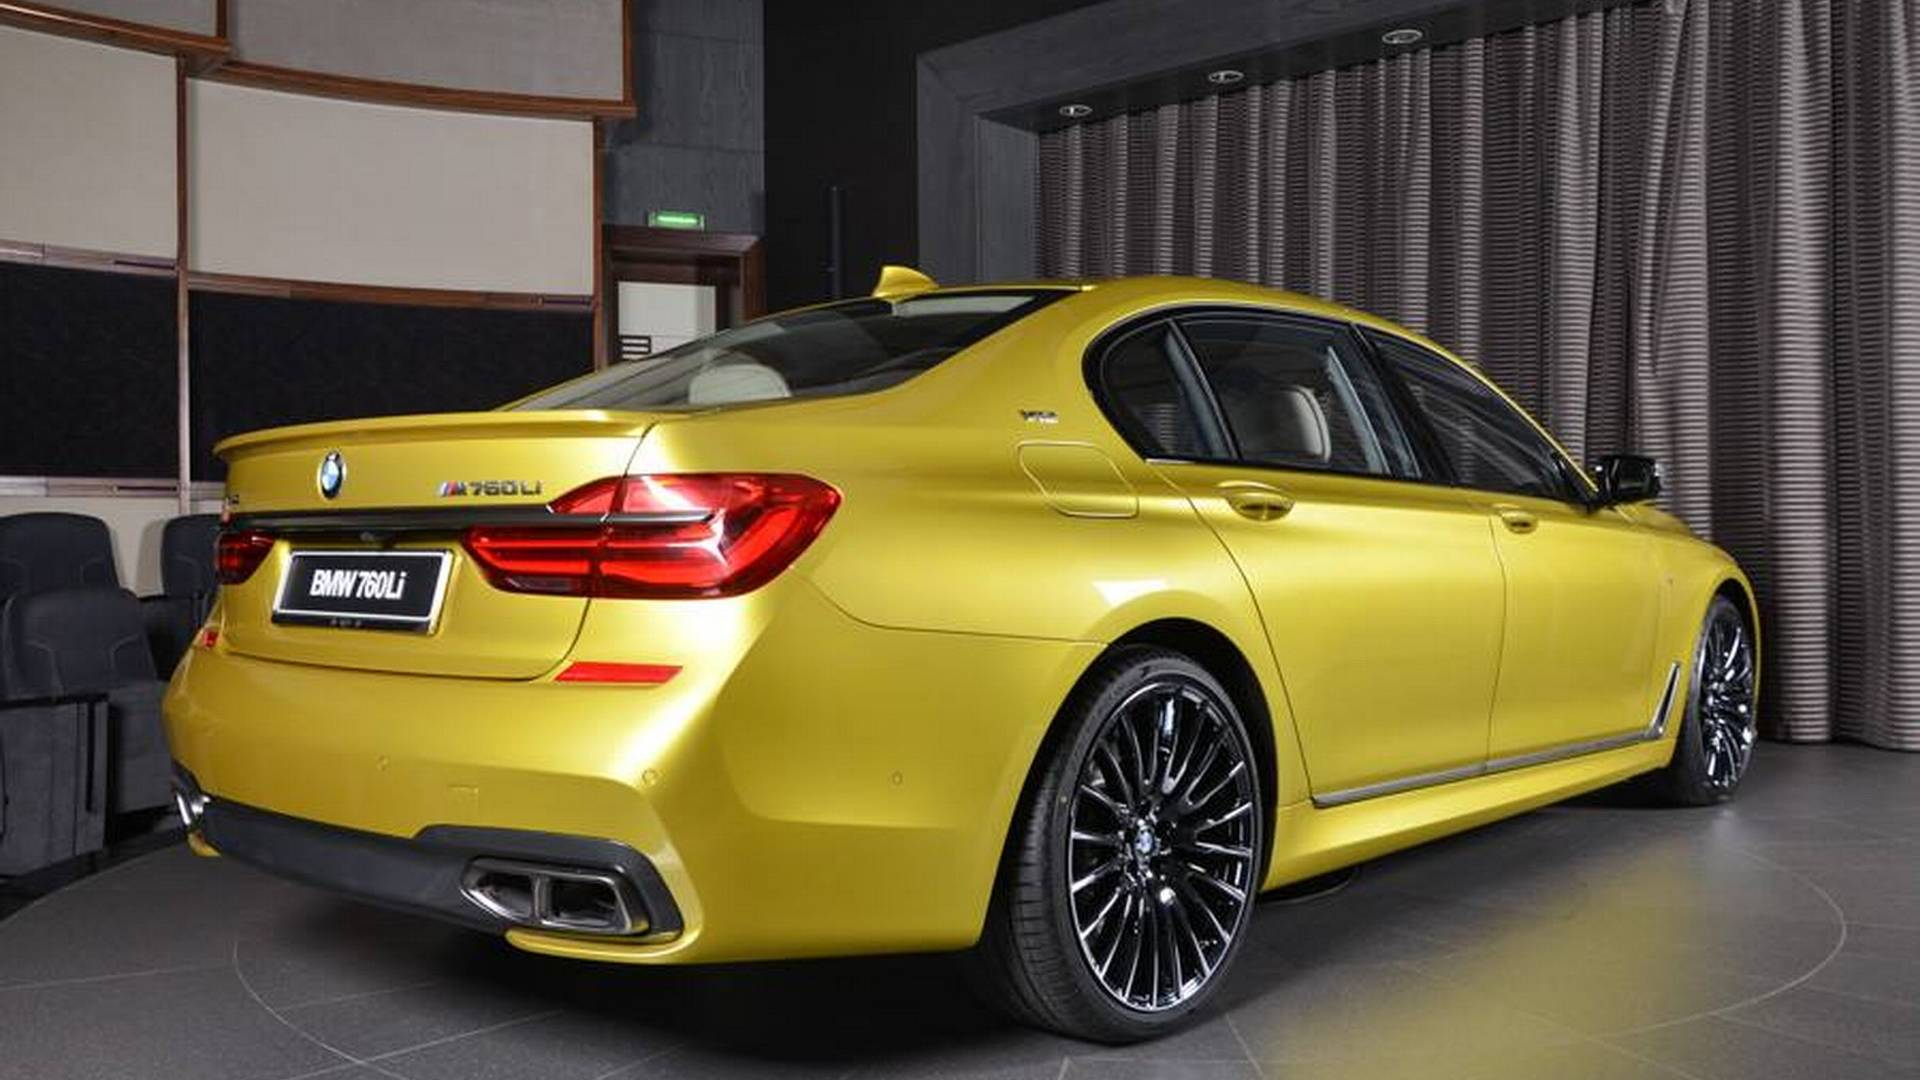 BMW_M60Li_Austin_Yellow_05